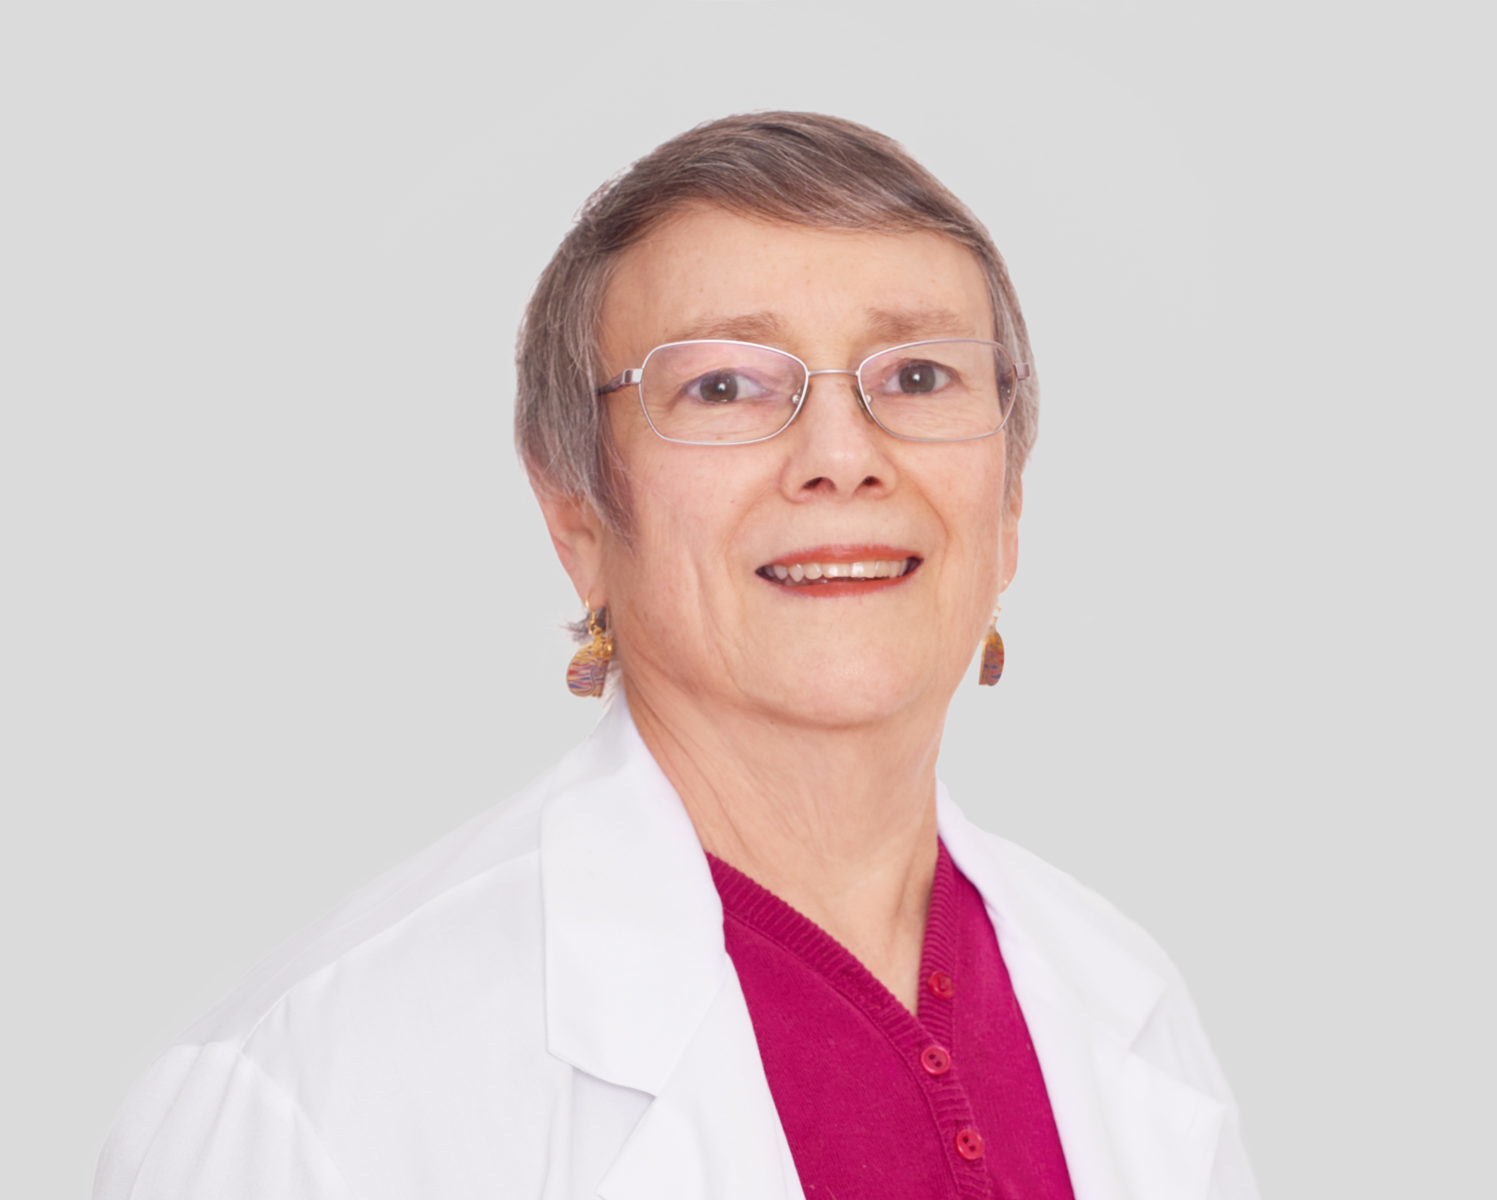 Dr. Betsy Bond of the Animal Medical Center in New York City